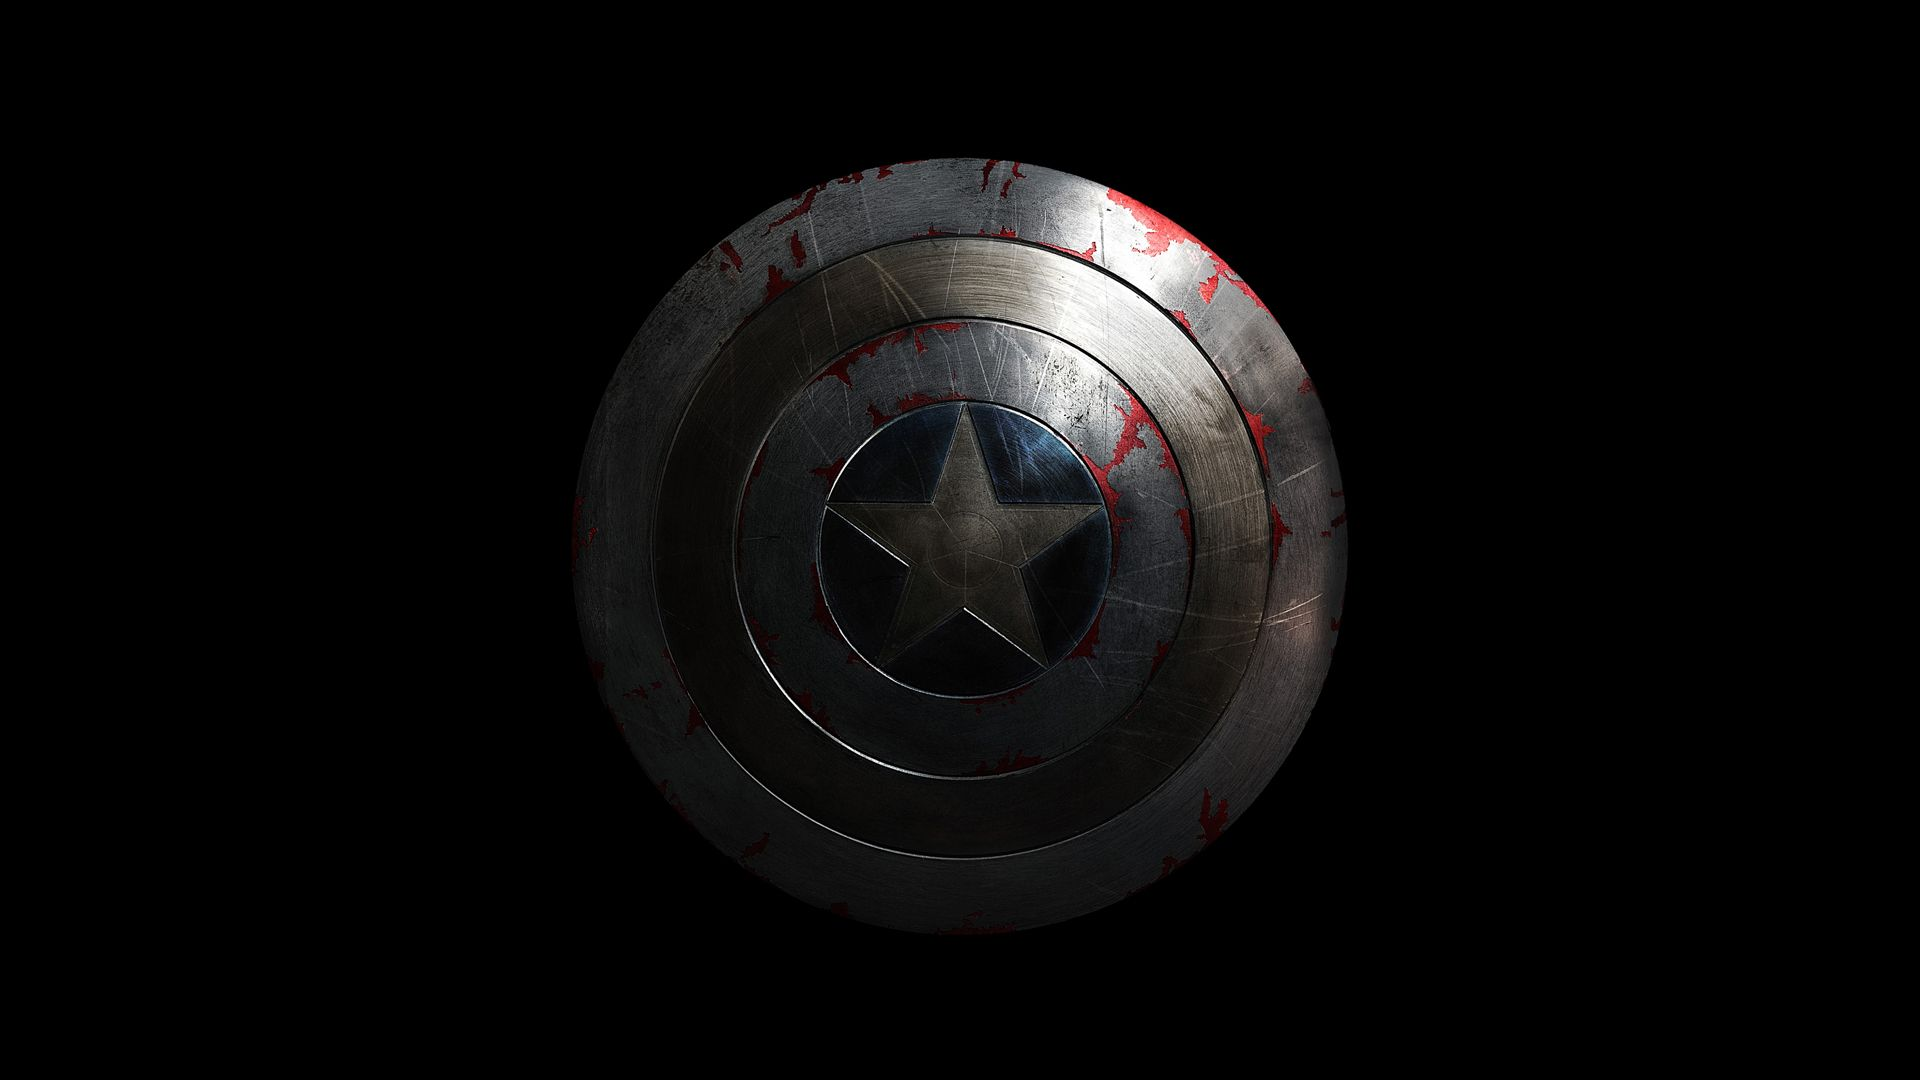 Hd wallpaper of captain america - Captain America Wallpapers Free Download